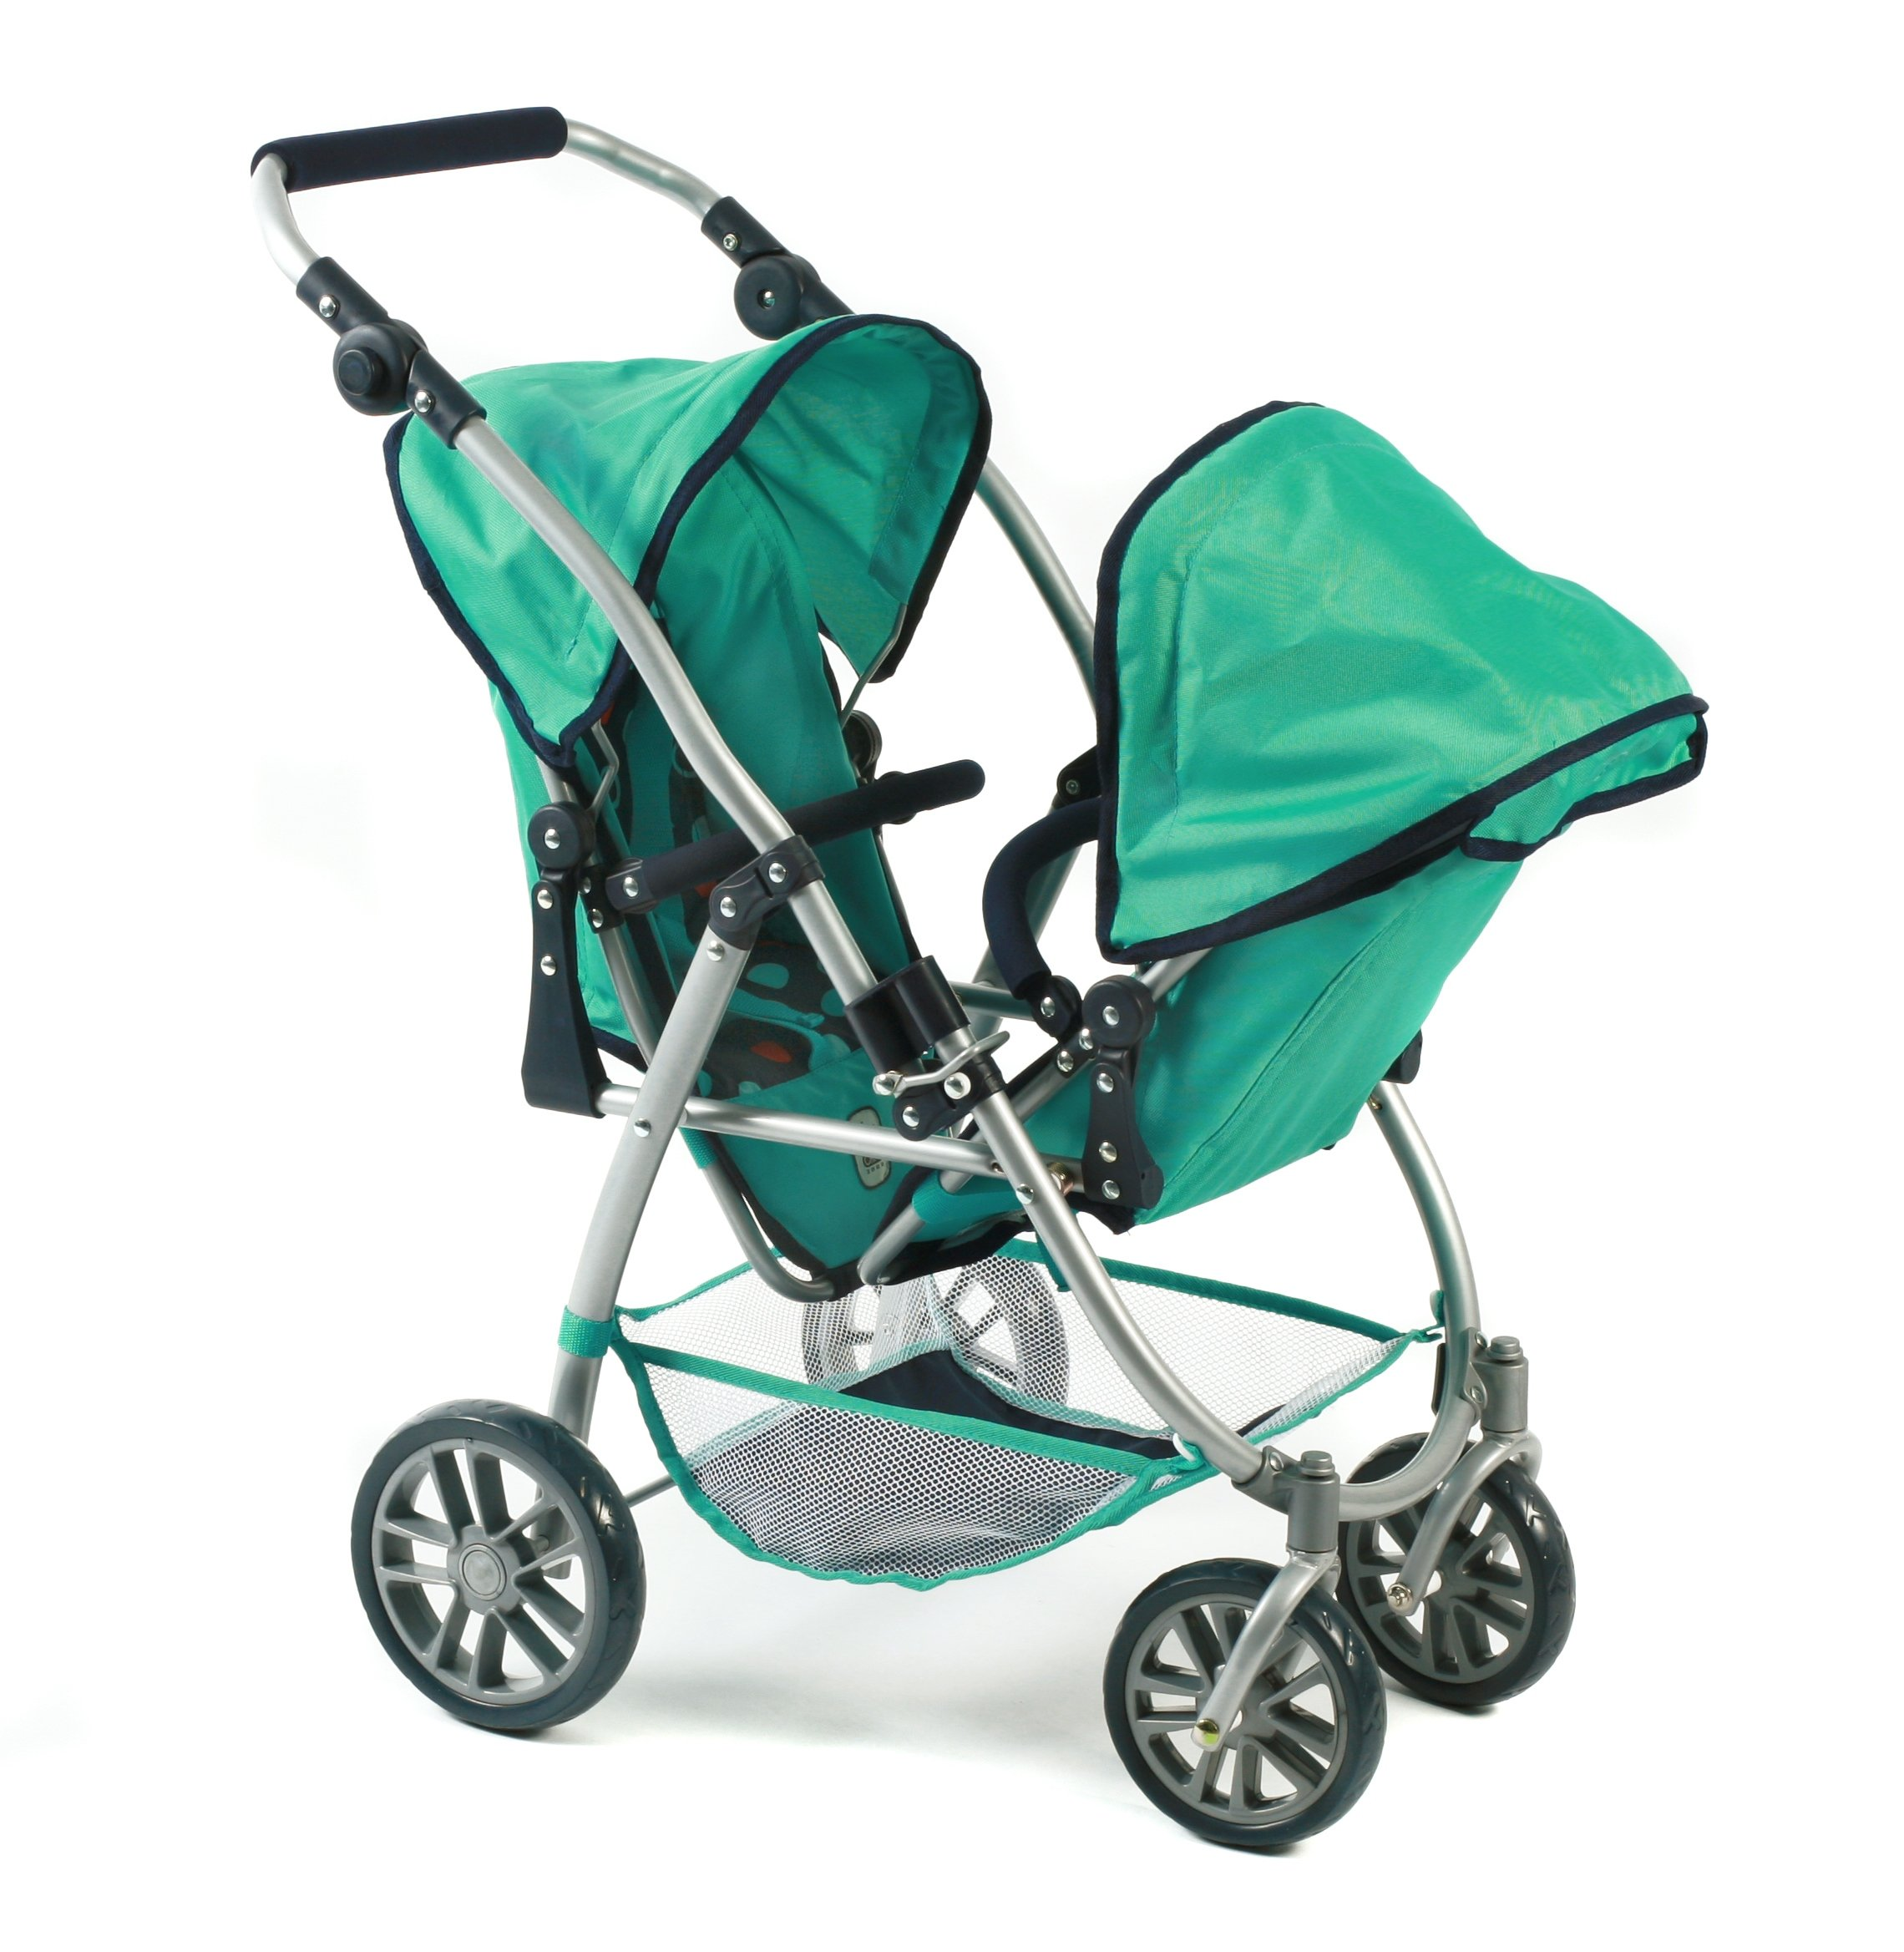 Bayer Chic 2000 689 21 Doll pram, Mint Bayer Chic Modern twin pushchairs with two removable and to be in a lying position adjustable Sport seating The seat of your Twin trolley are detachable and can be in multiple directions he tandem Buggy has a height-adjustable slider from 55 - 33 cm 2